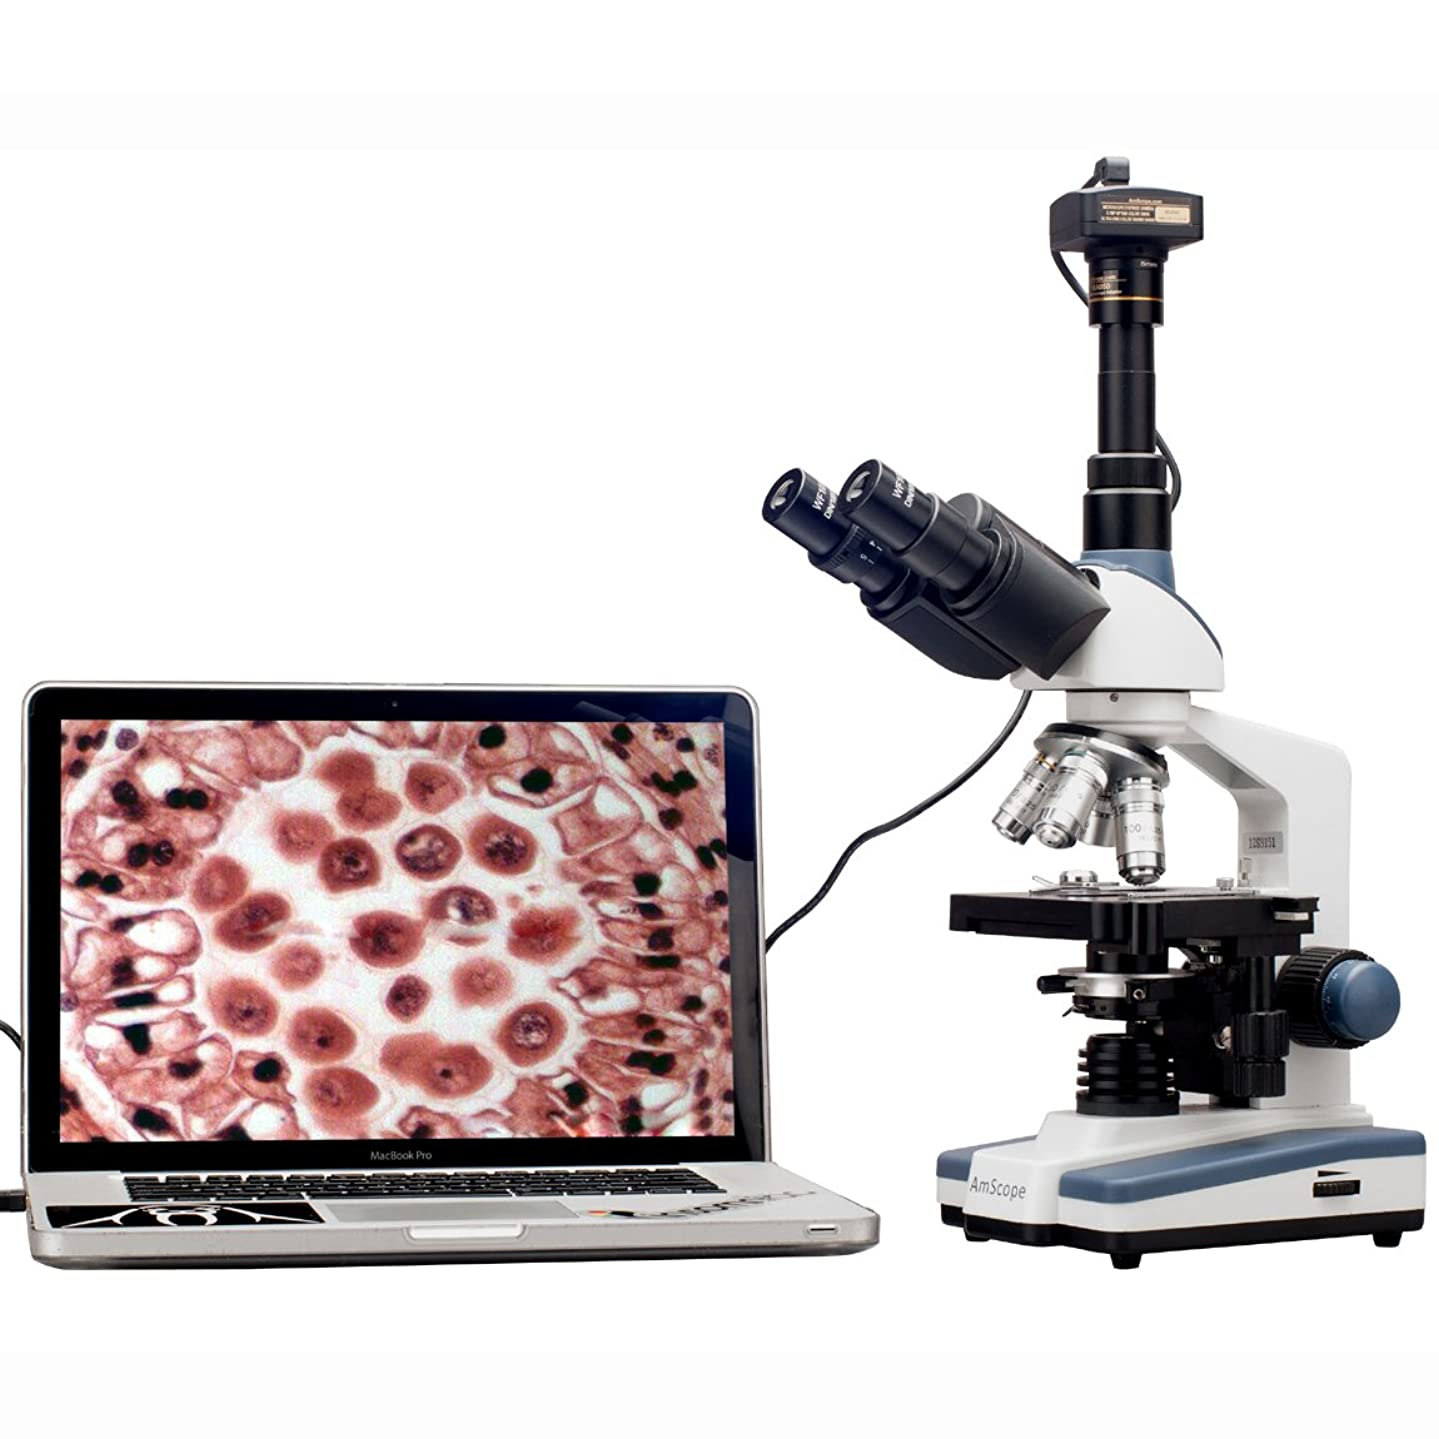 AmScope T120B-P Digital Professional Siedentopf Trinocular Compound Microscope, 40X-2000X Magnification, WF10x and WF20x Eyepieces, Brightfield, LED Illumination, Abbe Condenser with Iris Diaphragm, Double-Layer Mechanical Stage, 100-240VAC, Includes 0.3MP Camera with Reduction Lens and Software